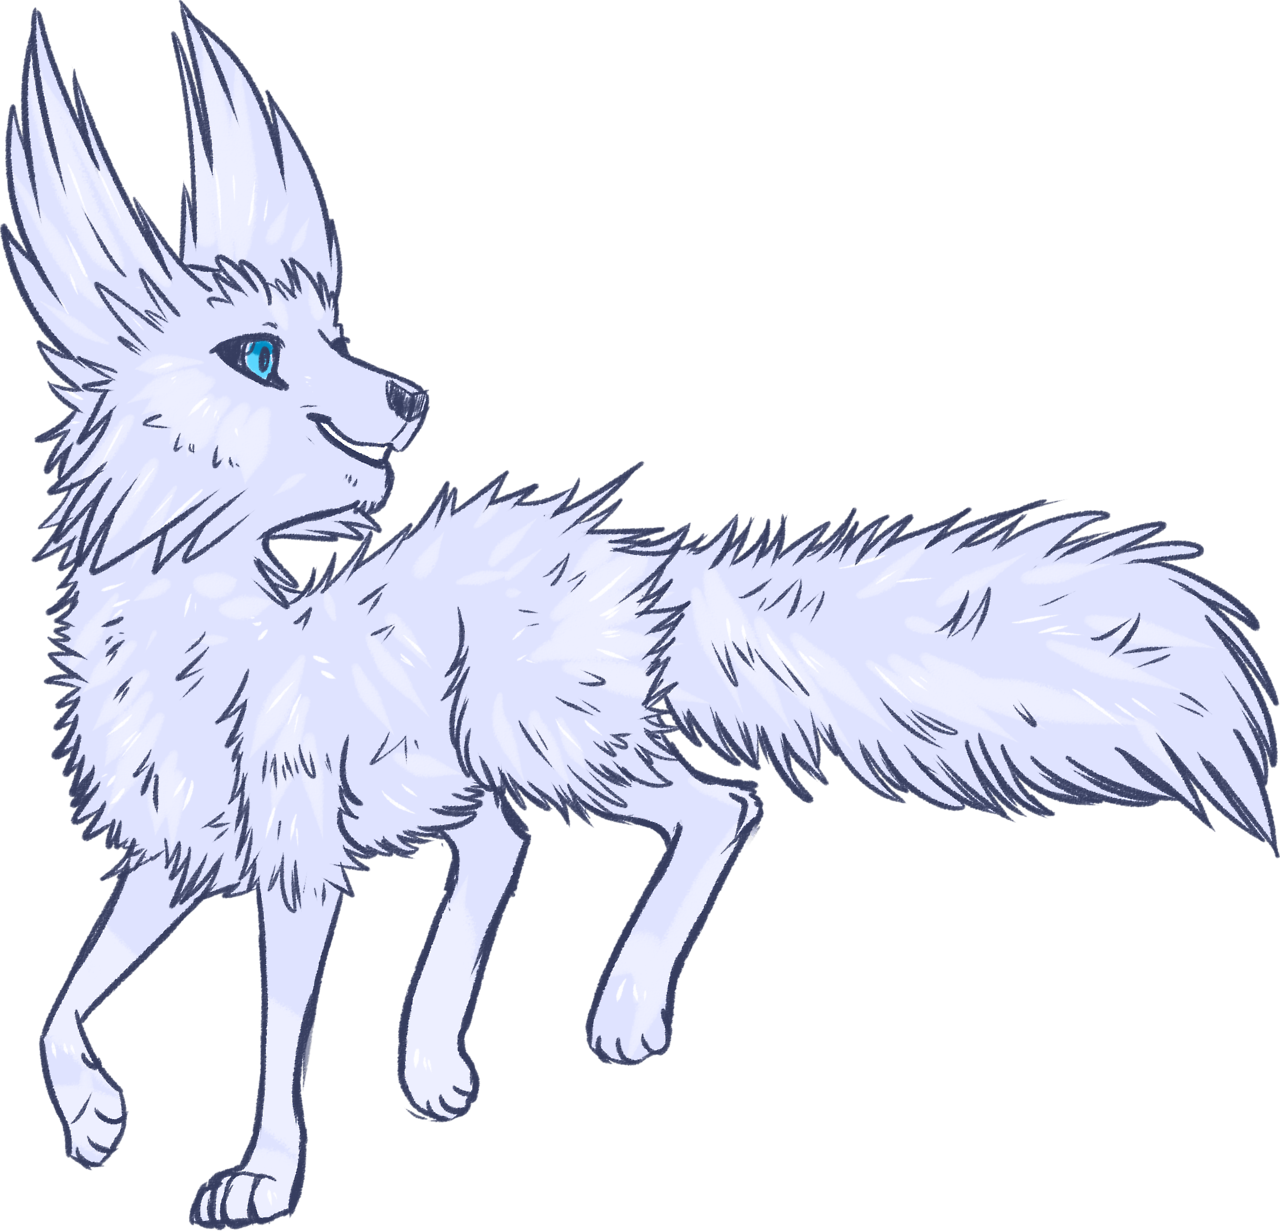 Little Colored Sketch Of A Vulptex Crystal Critter From Star Wars Star Wars Drawings